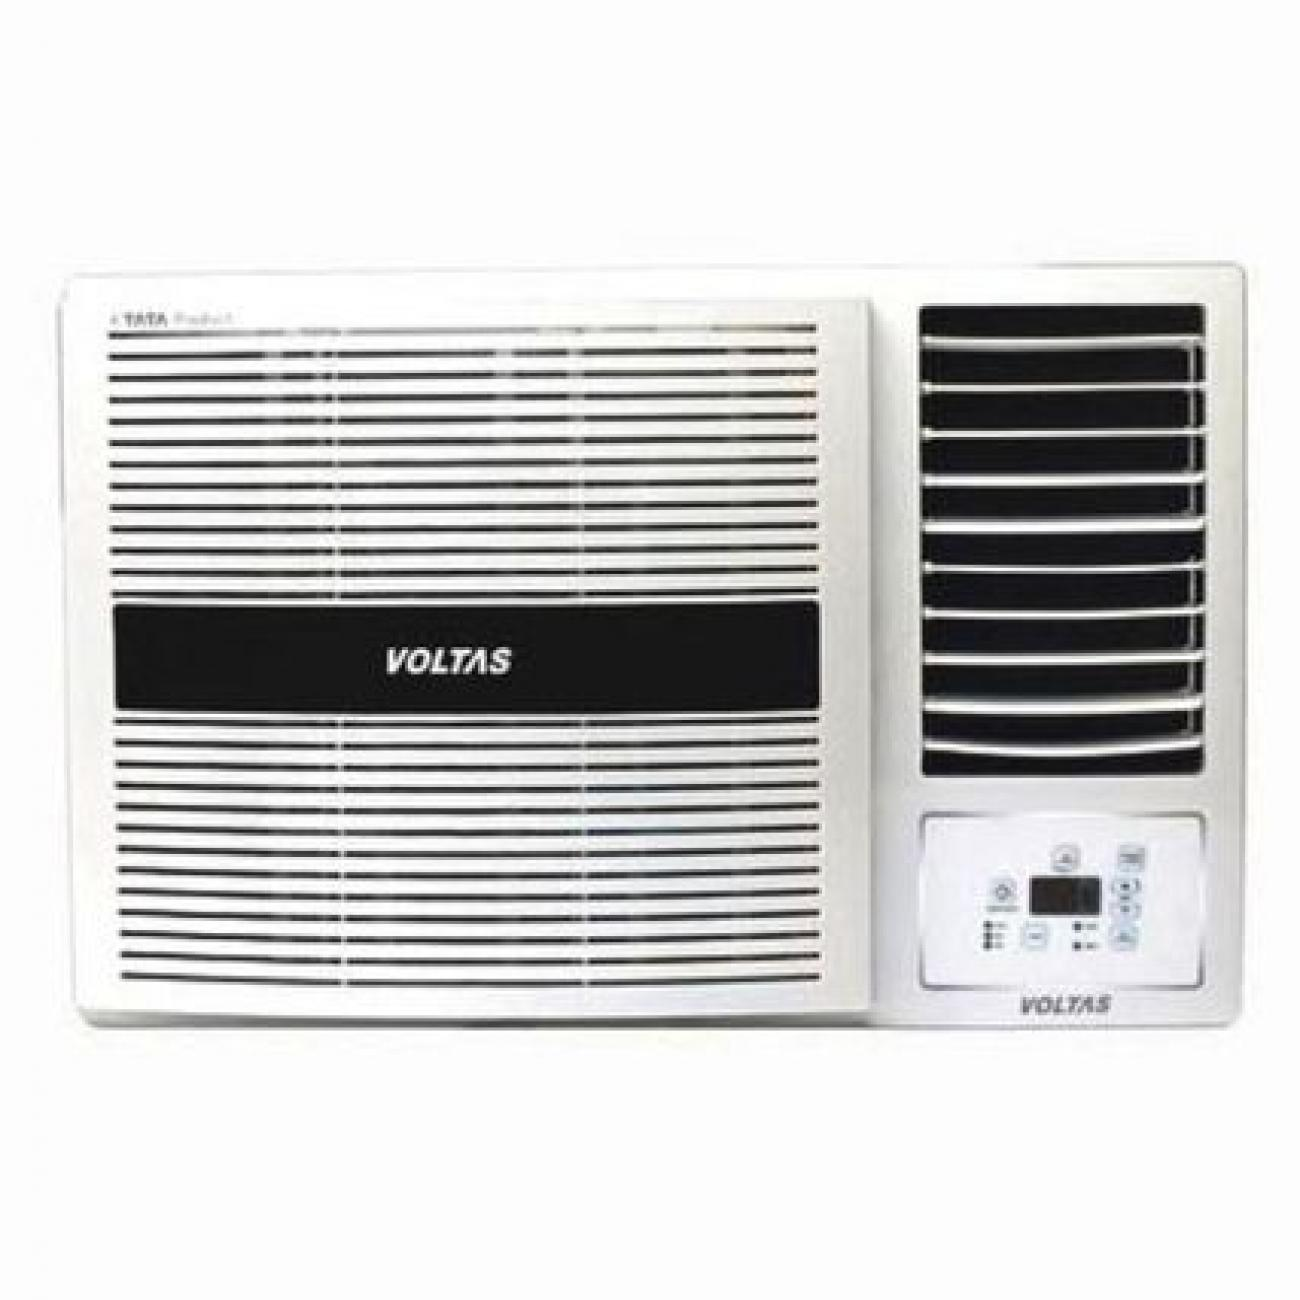 Voltas Gold 1.5 Ton Window AC